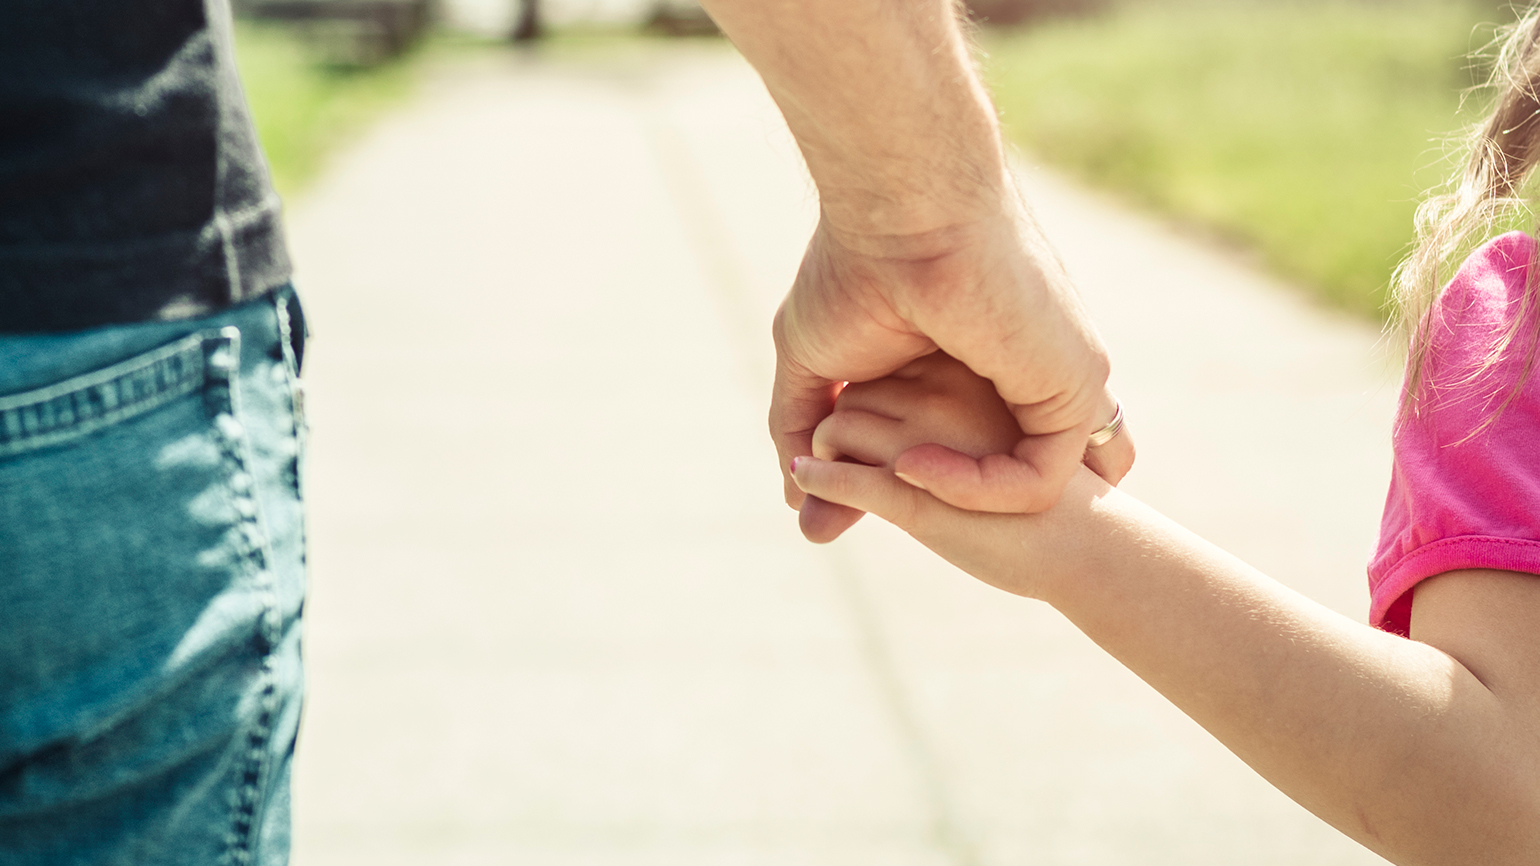 A father holds his daughter's hand